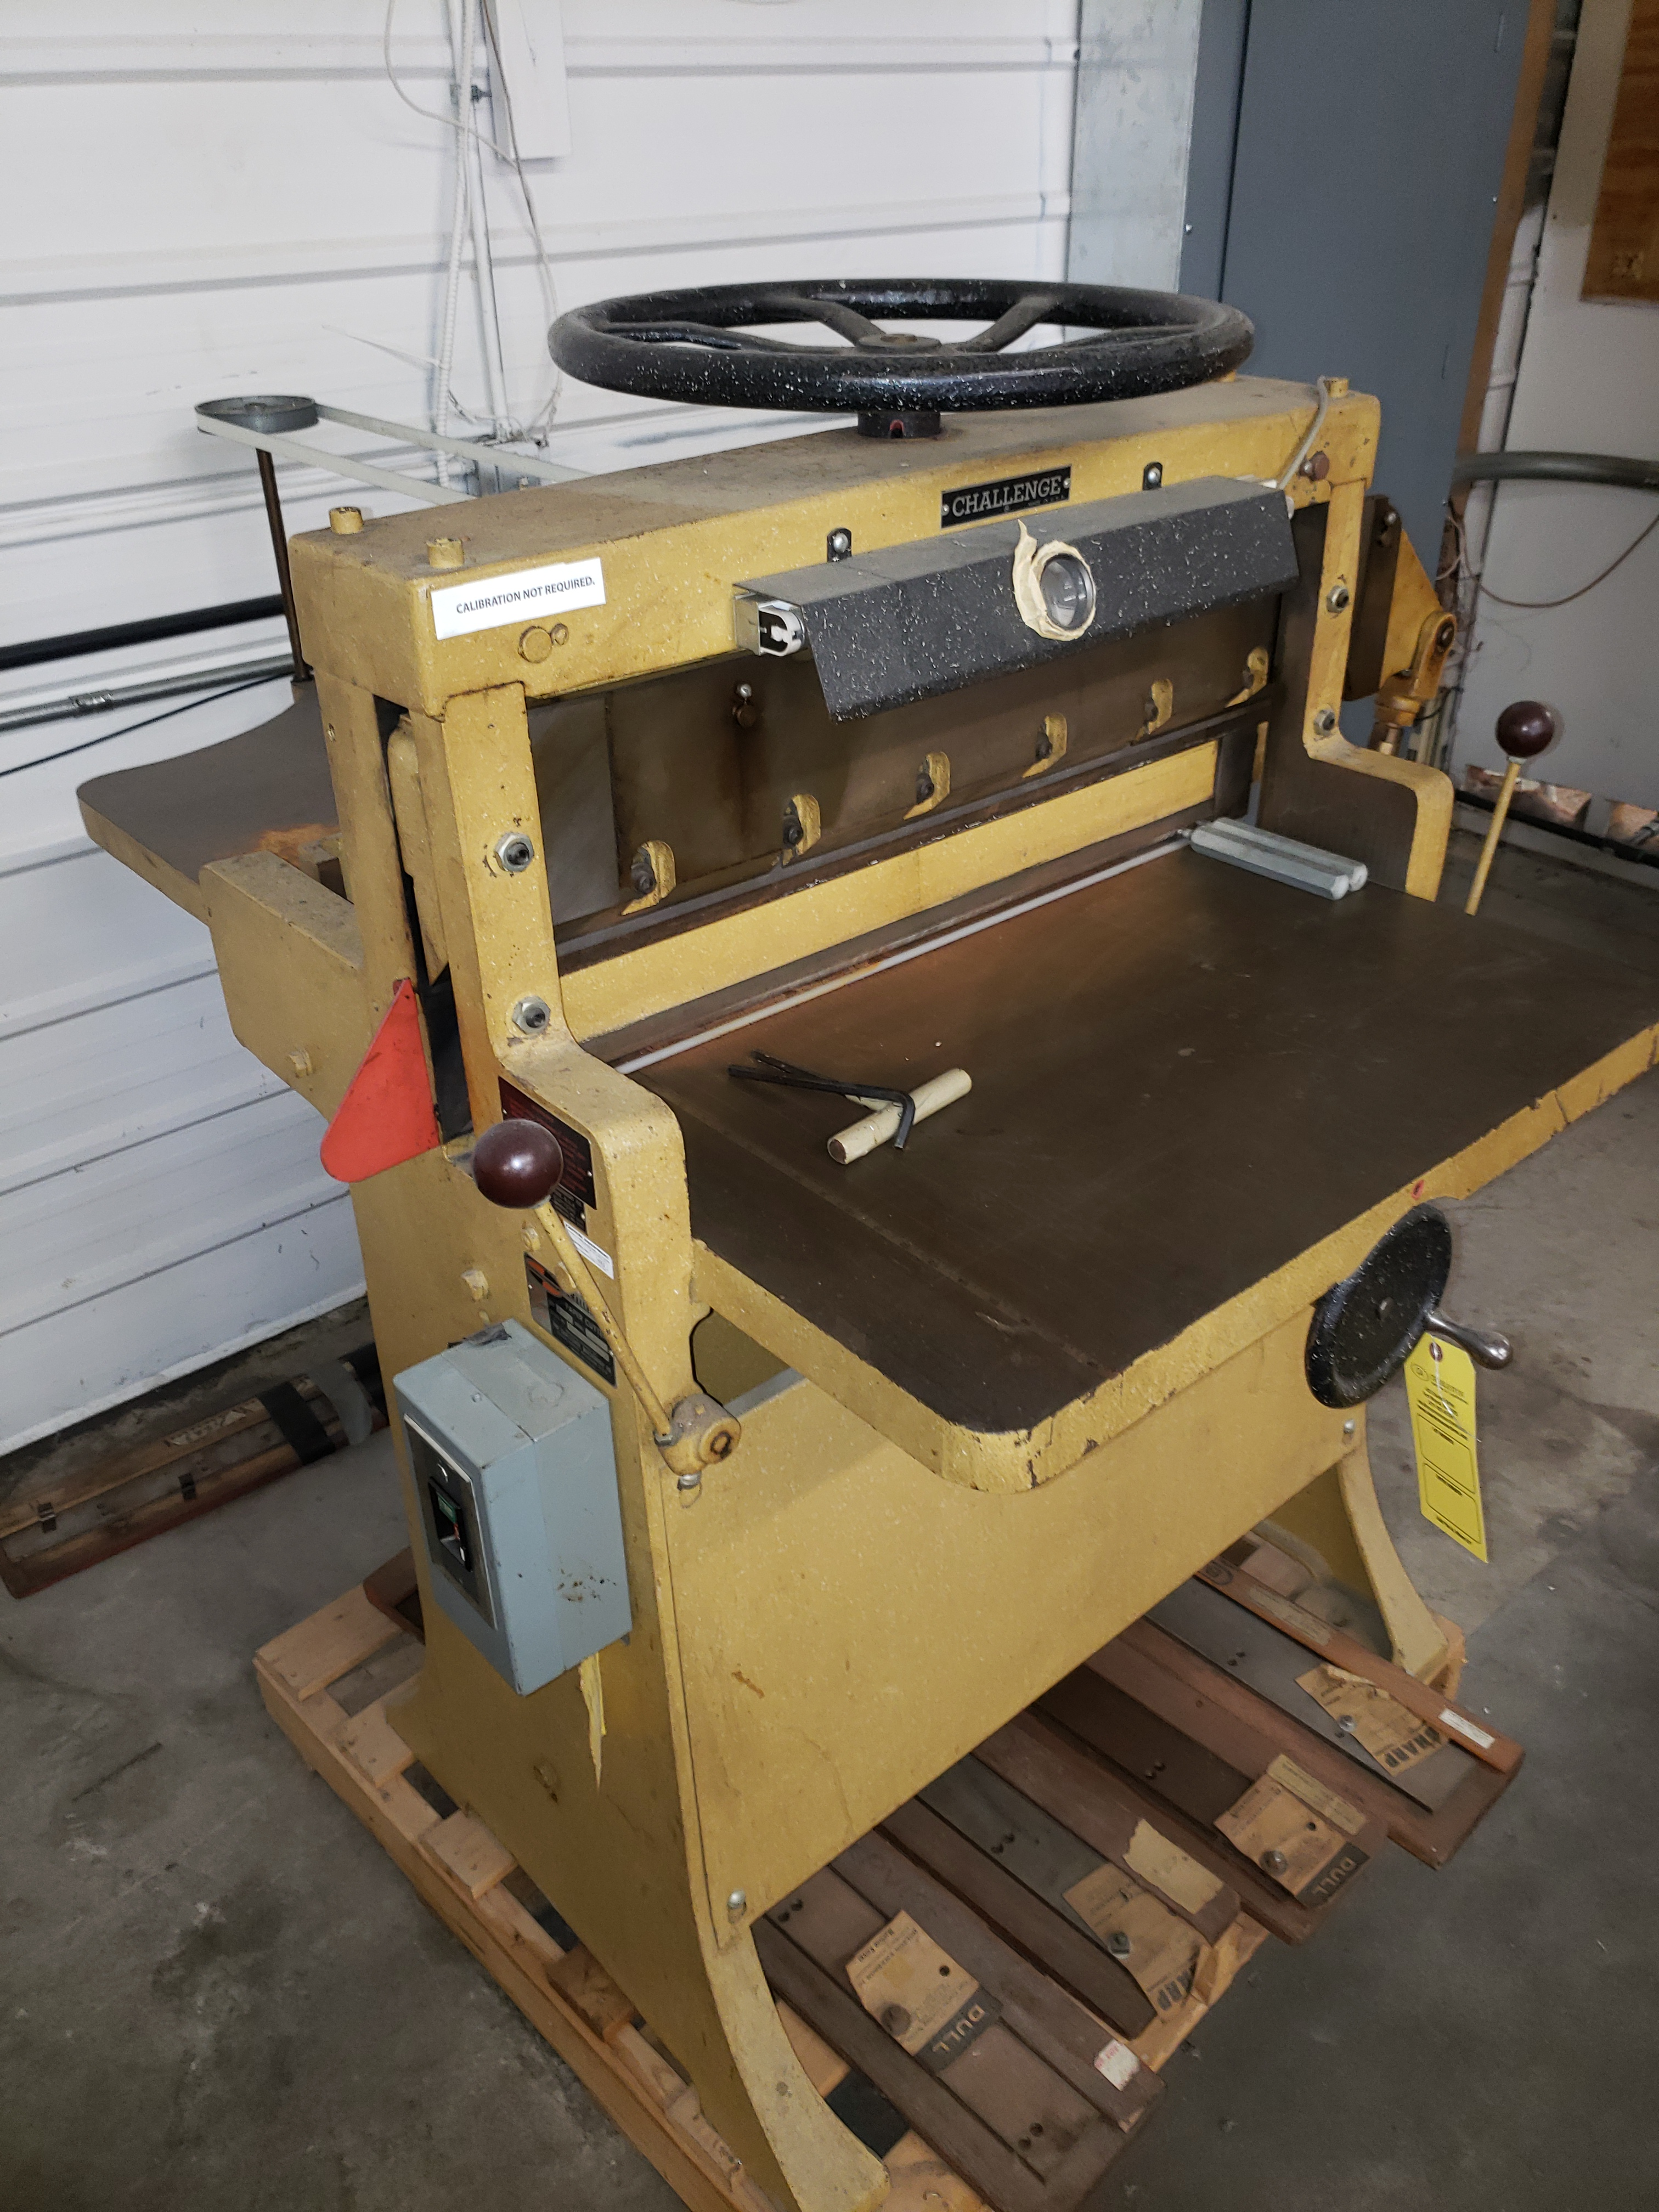 Lot 5043 - CHALLENGE PAPER CUTTER MODEL-HA S#15908 SIZE:305 (LOCATED AT: 16335 LIMA ROAD BLDG. 4 HUNTERTOWN, IN